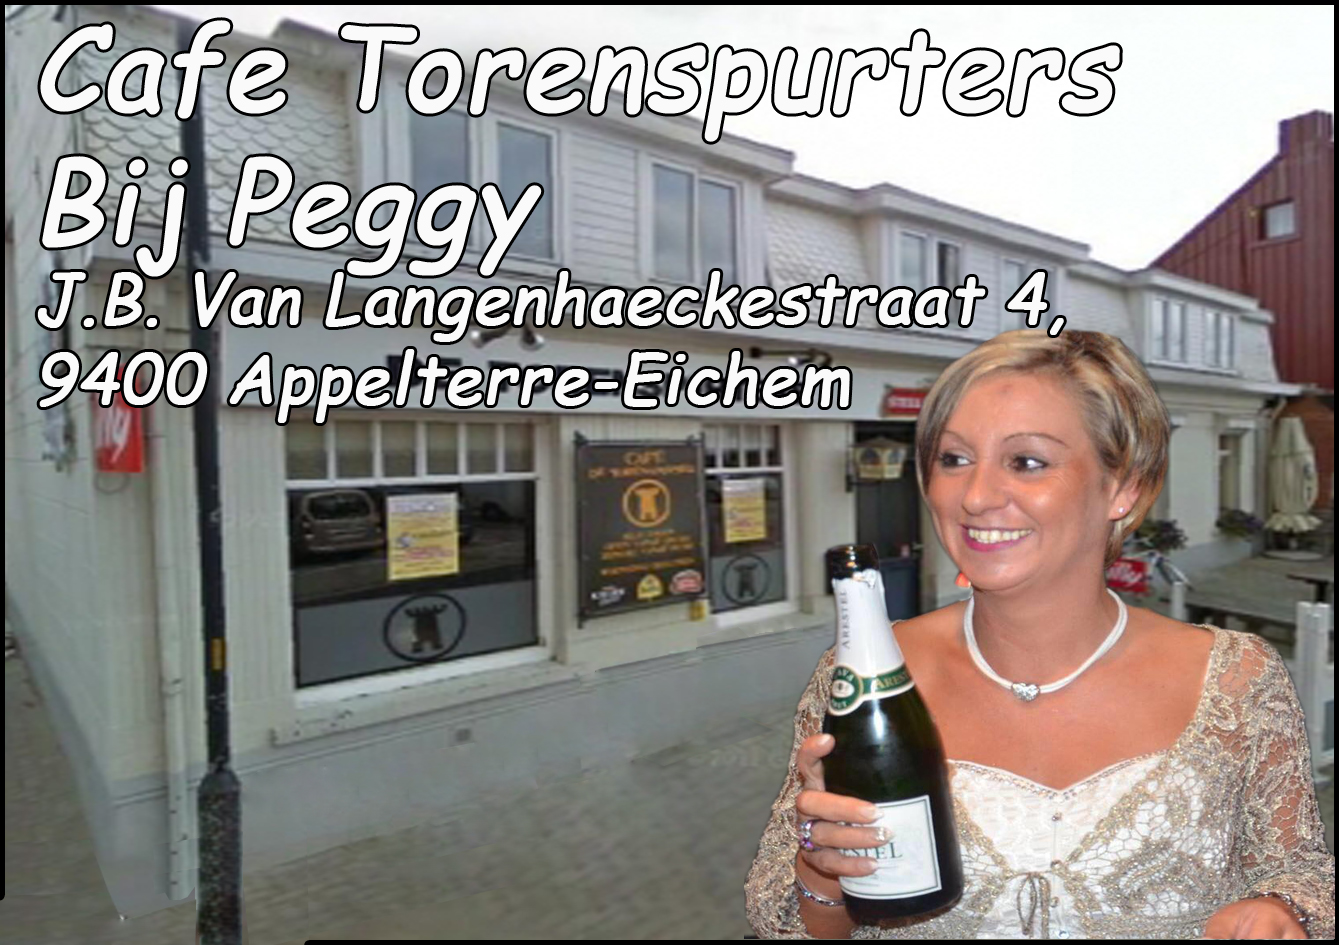 advertentie_cafe_torenspurters_-_kopie_4.jpg